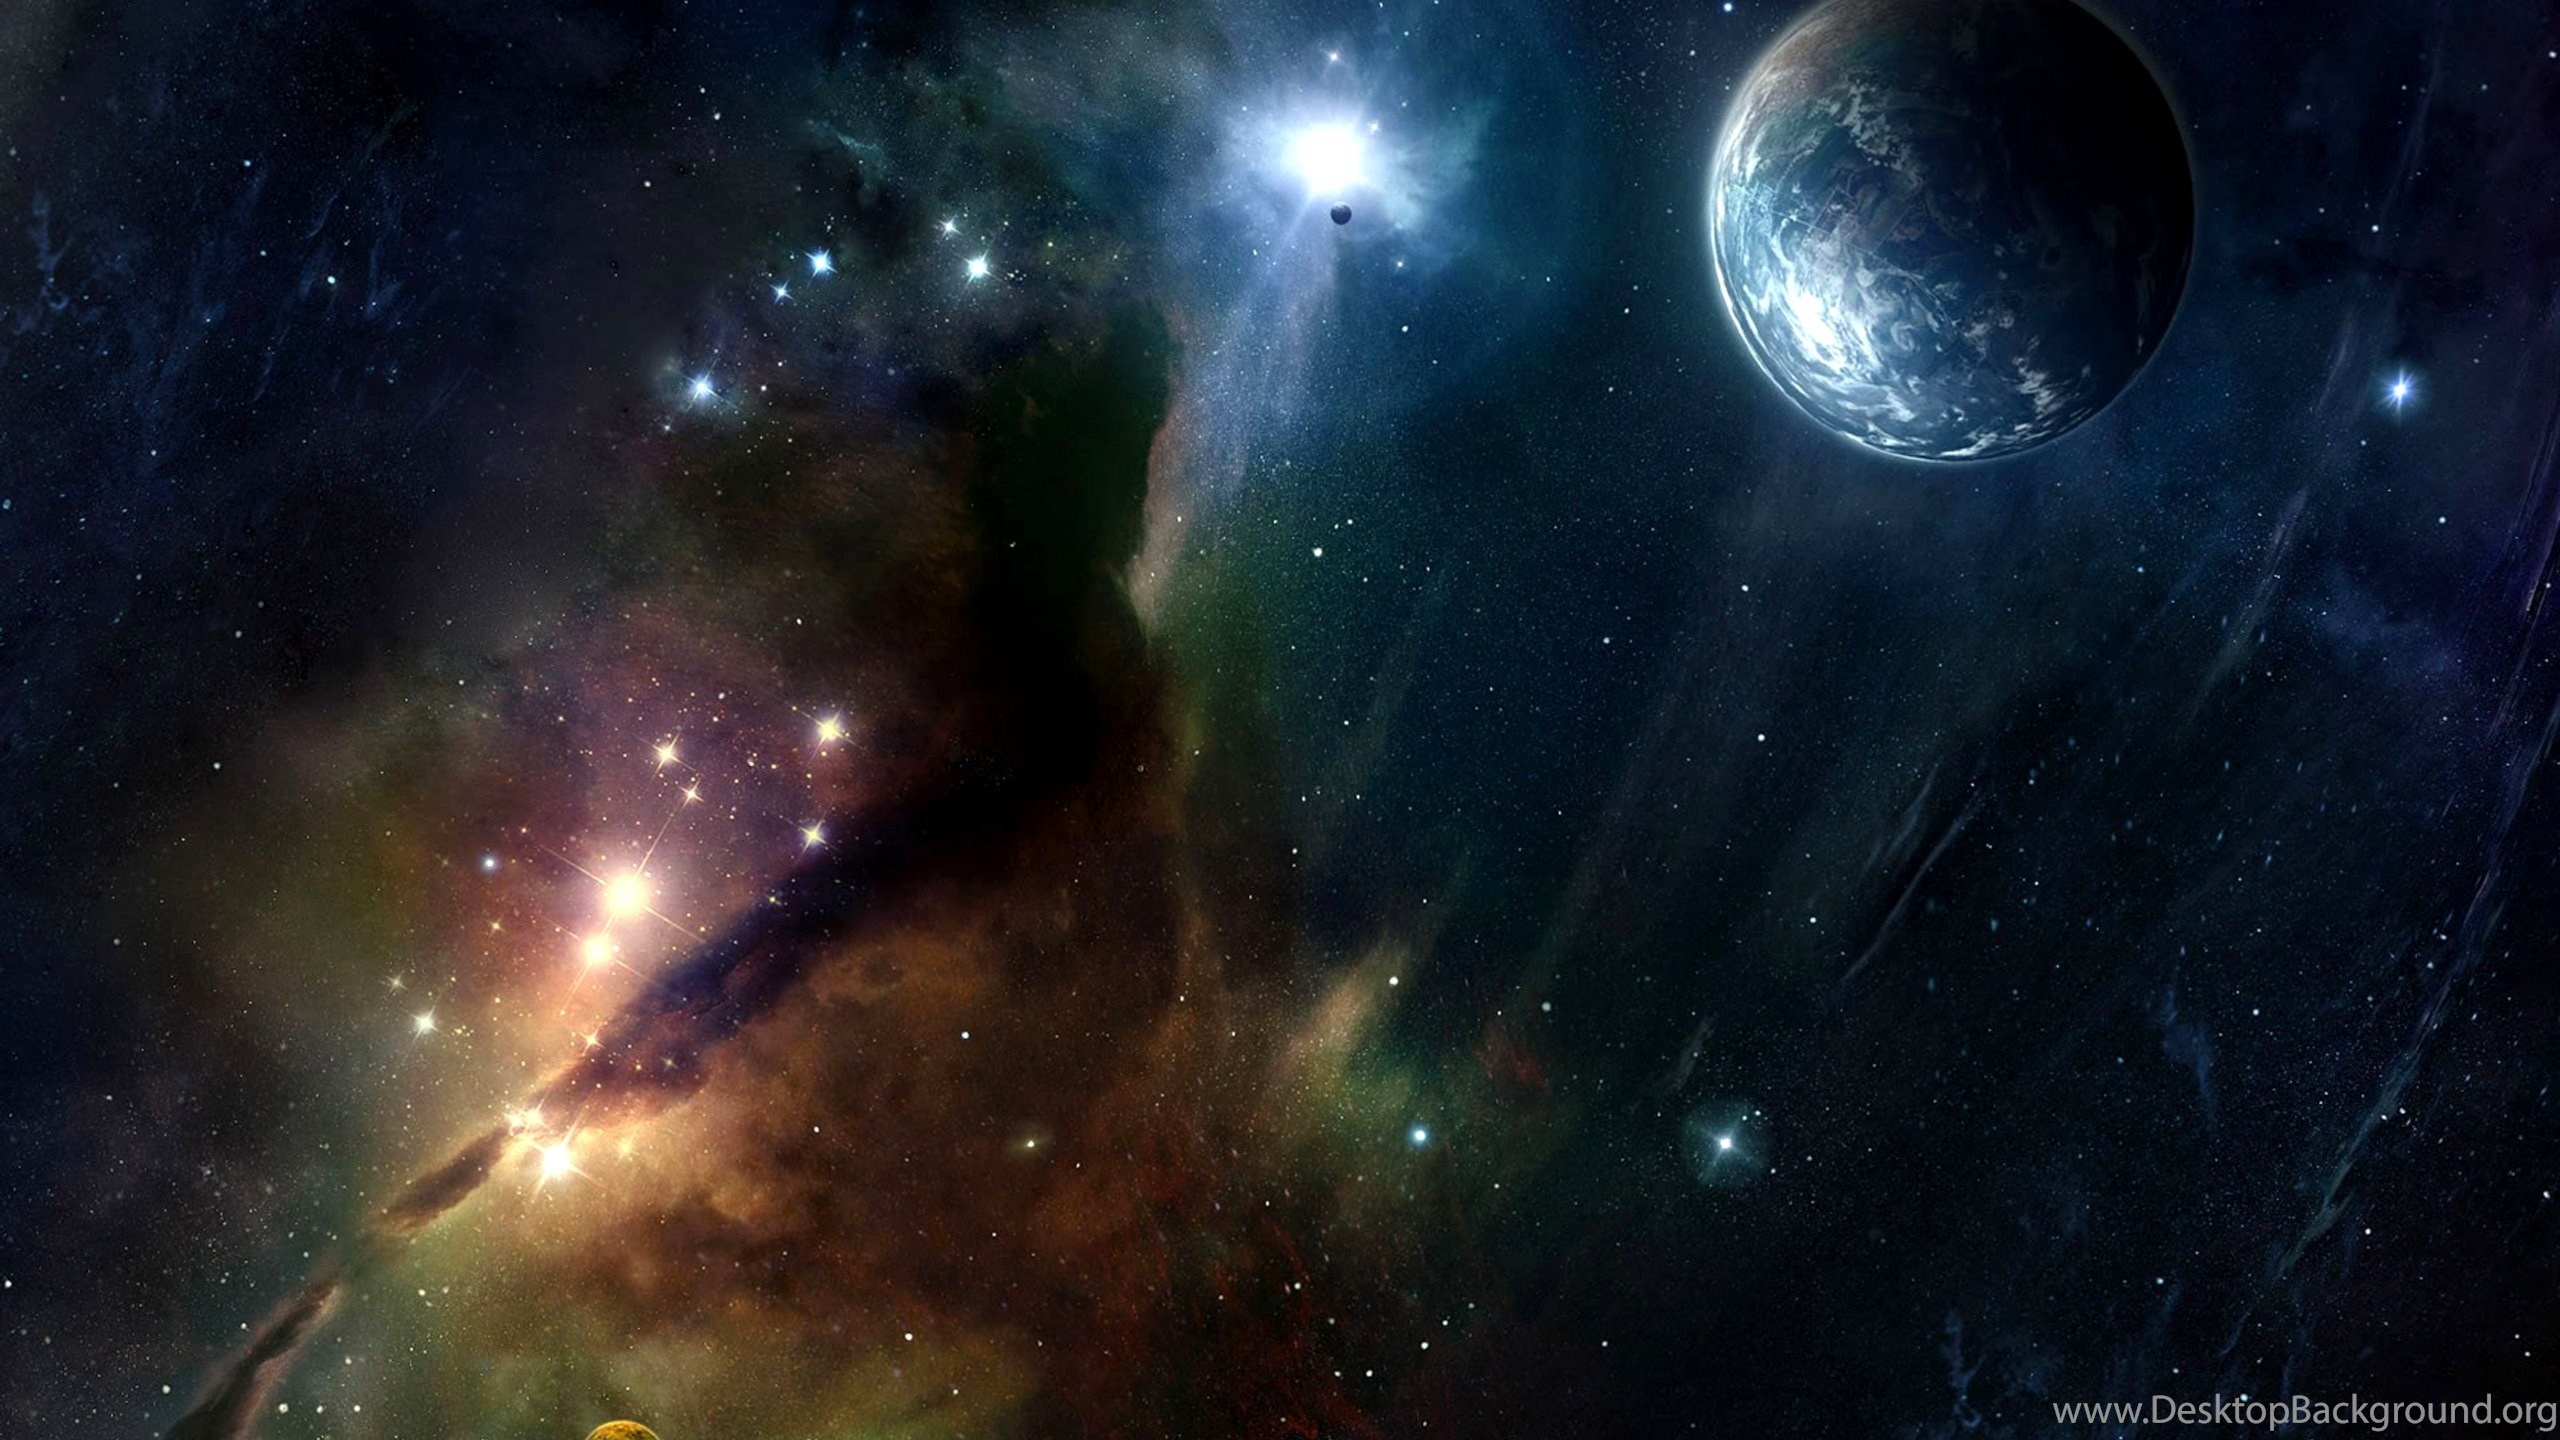 Earth Wallpaper 31 Source - Space Background Images Free , HD Wallpaper & Backgrounds